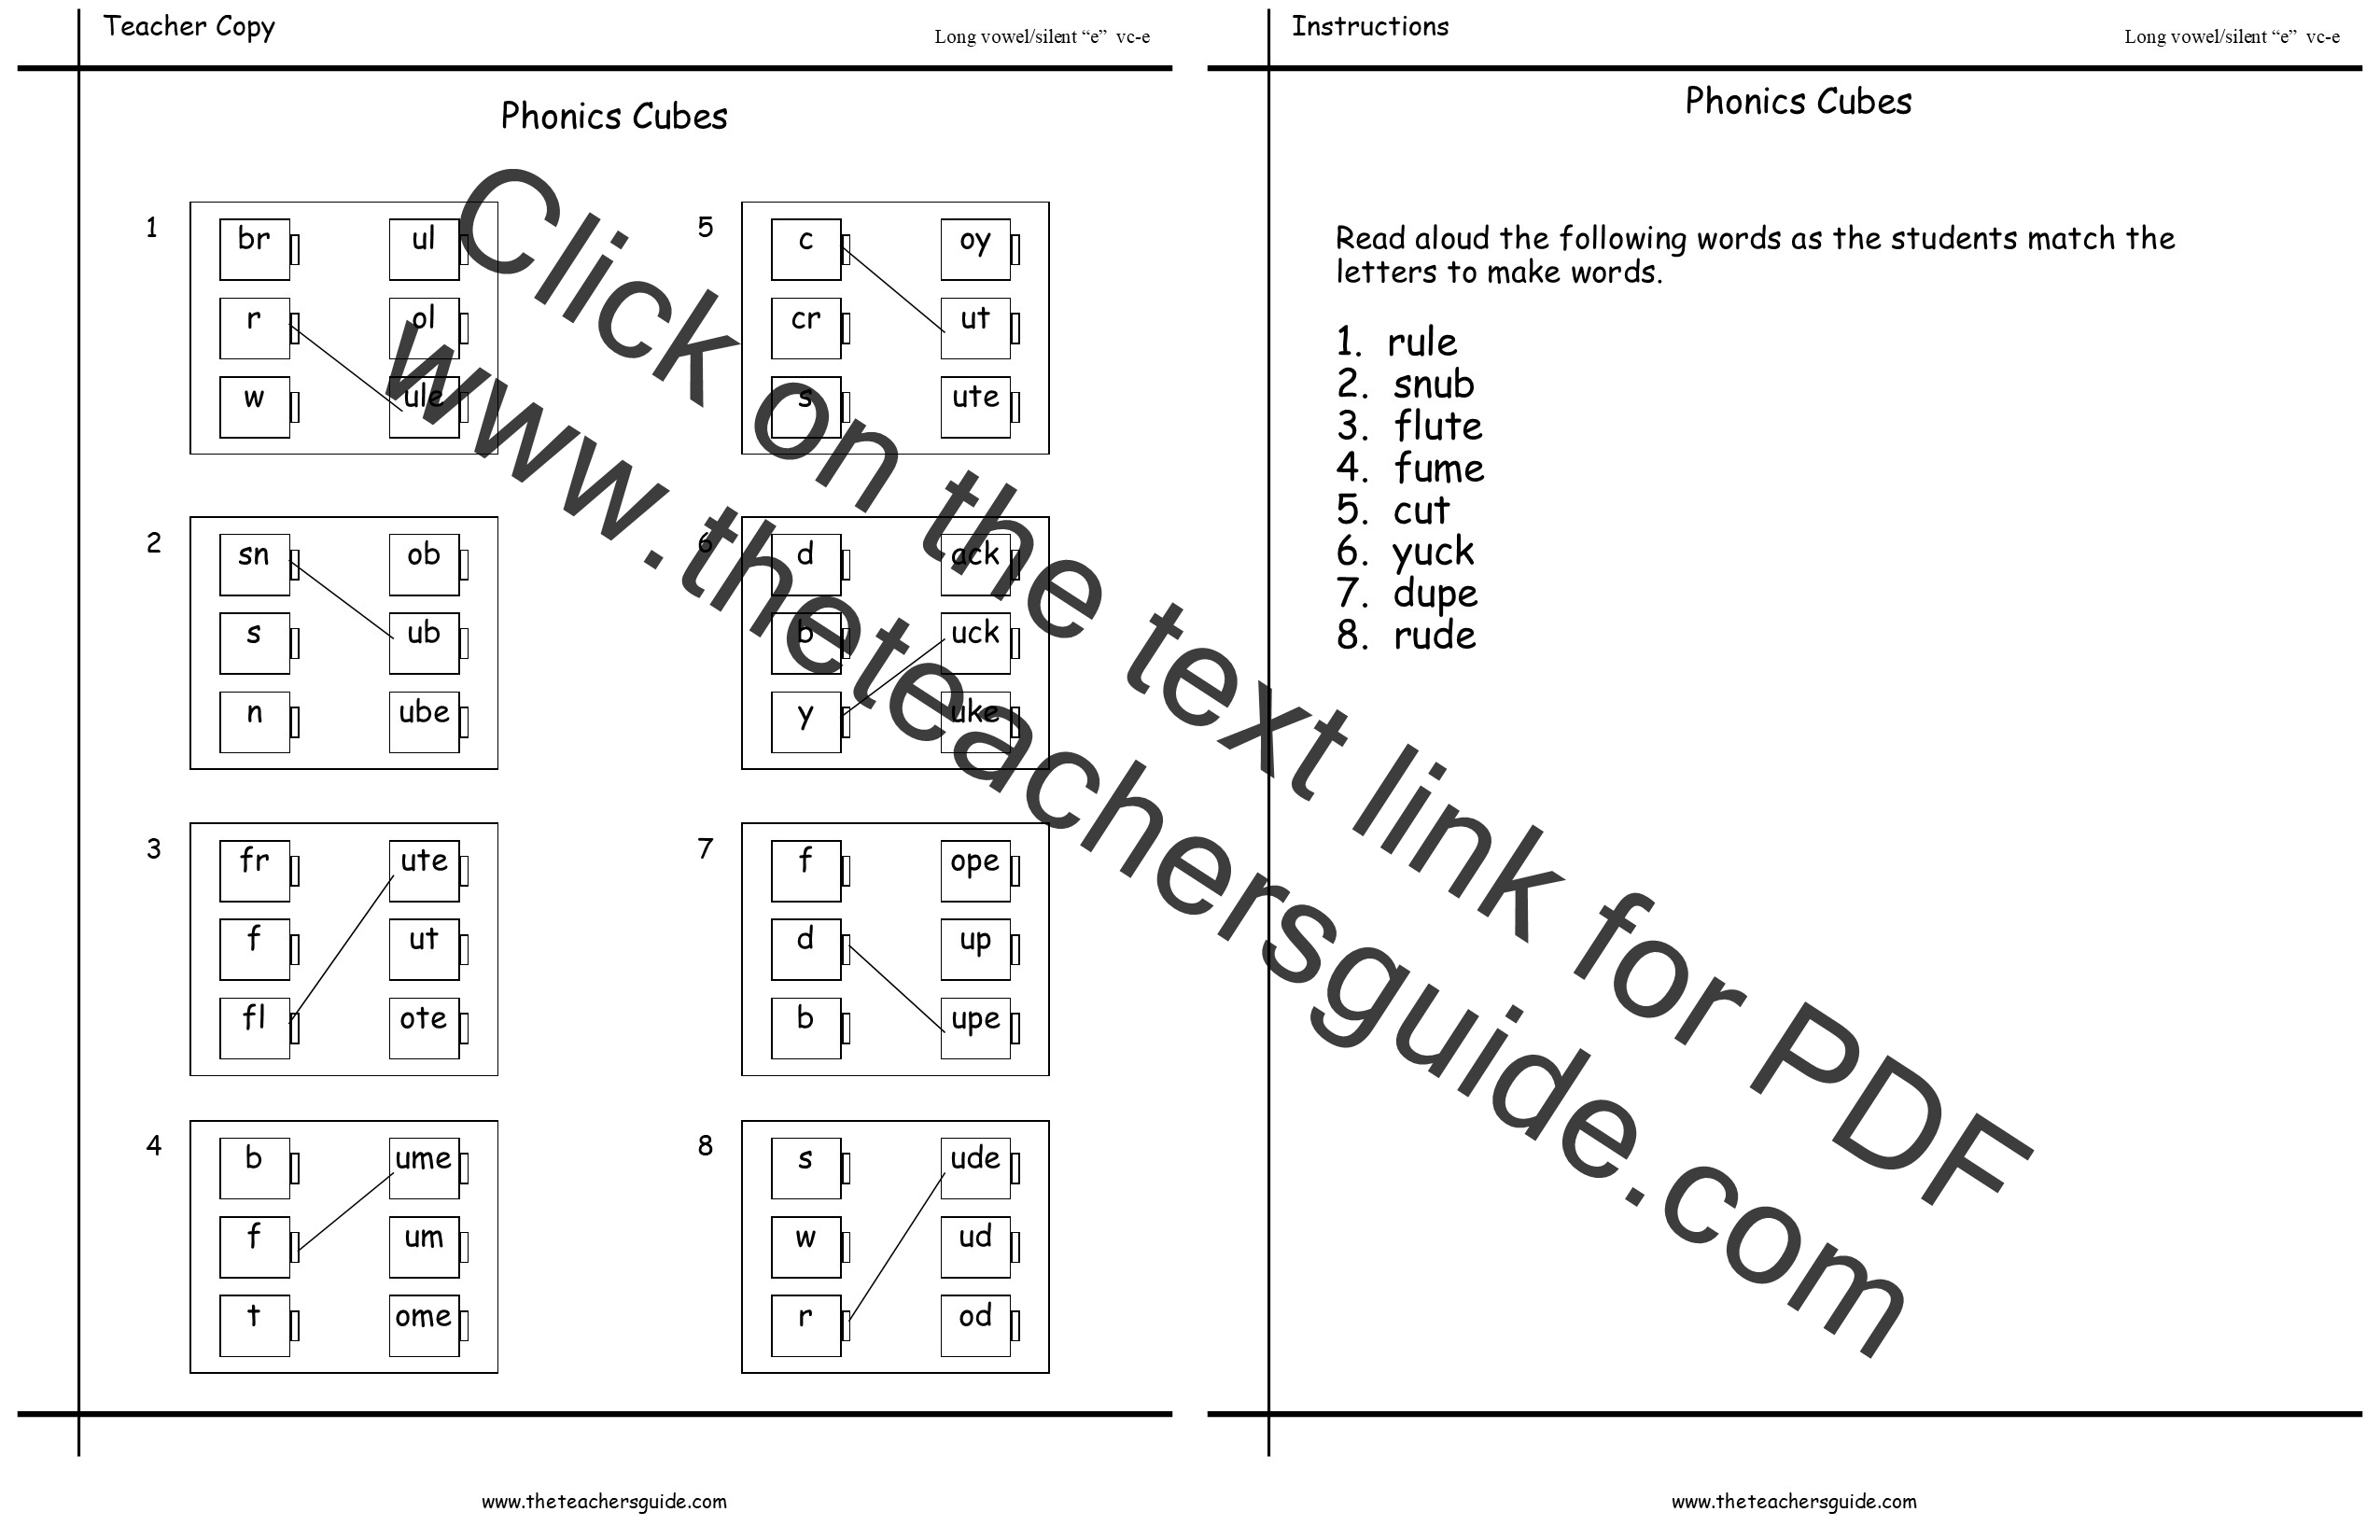 Worksheets Phonics Worksheets For Adults free phonics printouts from the teachers guide flashcards